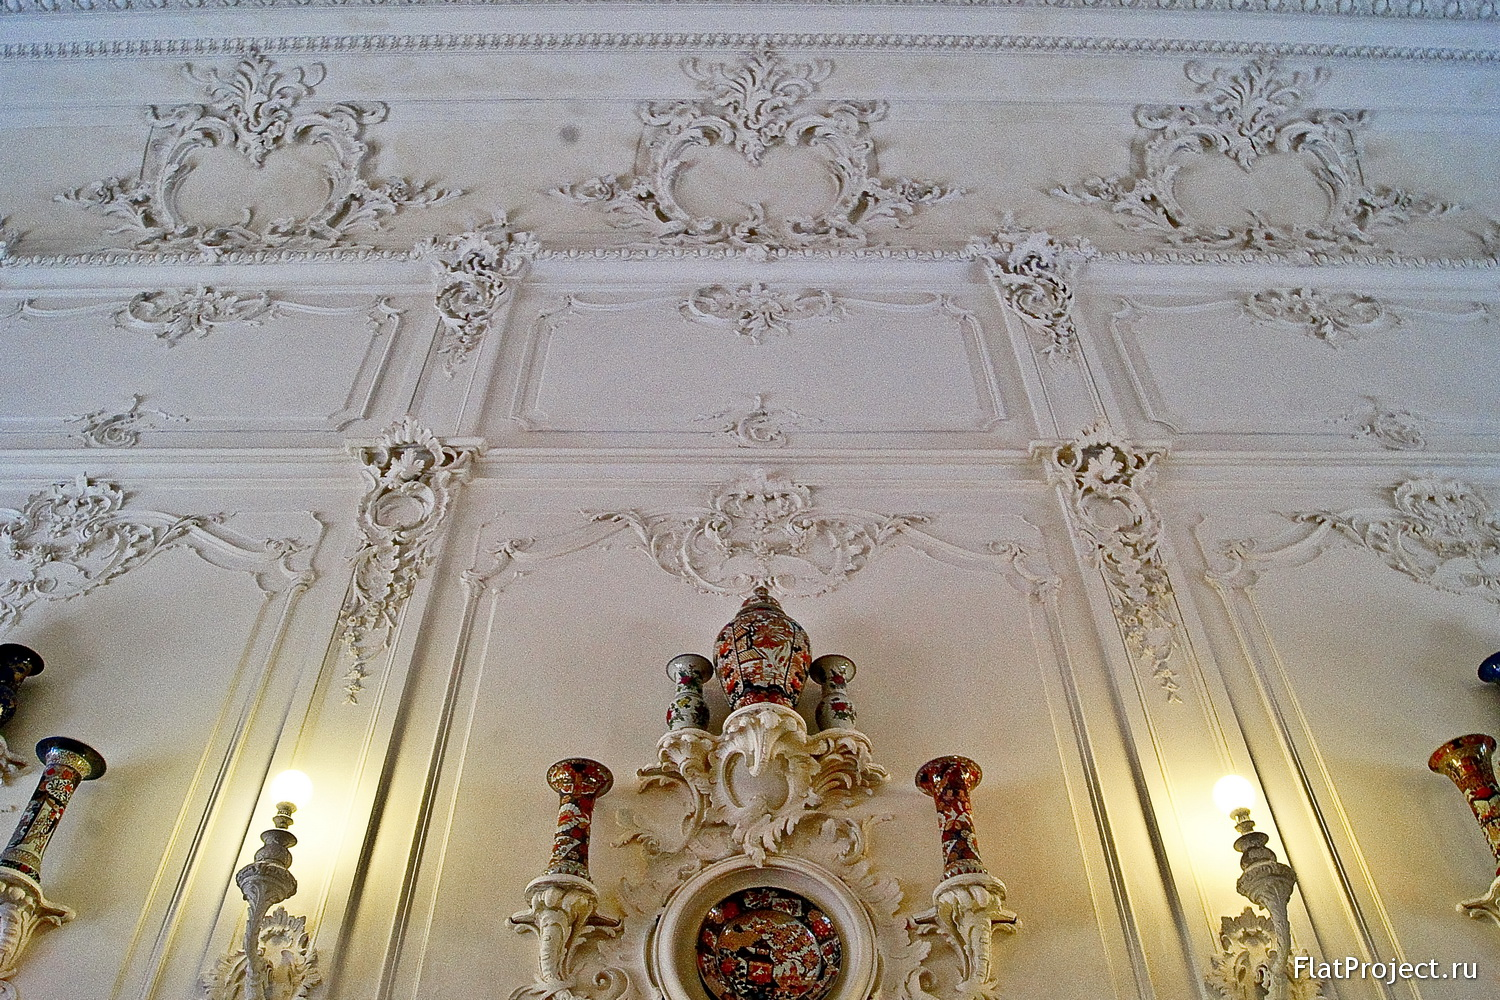 The Catherine Palace interiors – photo 21